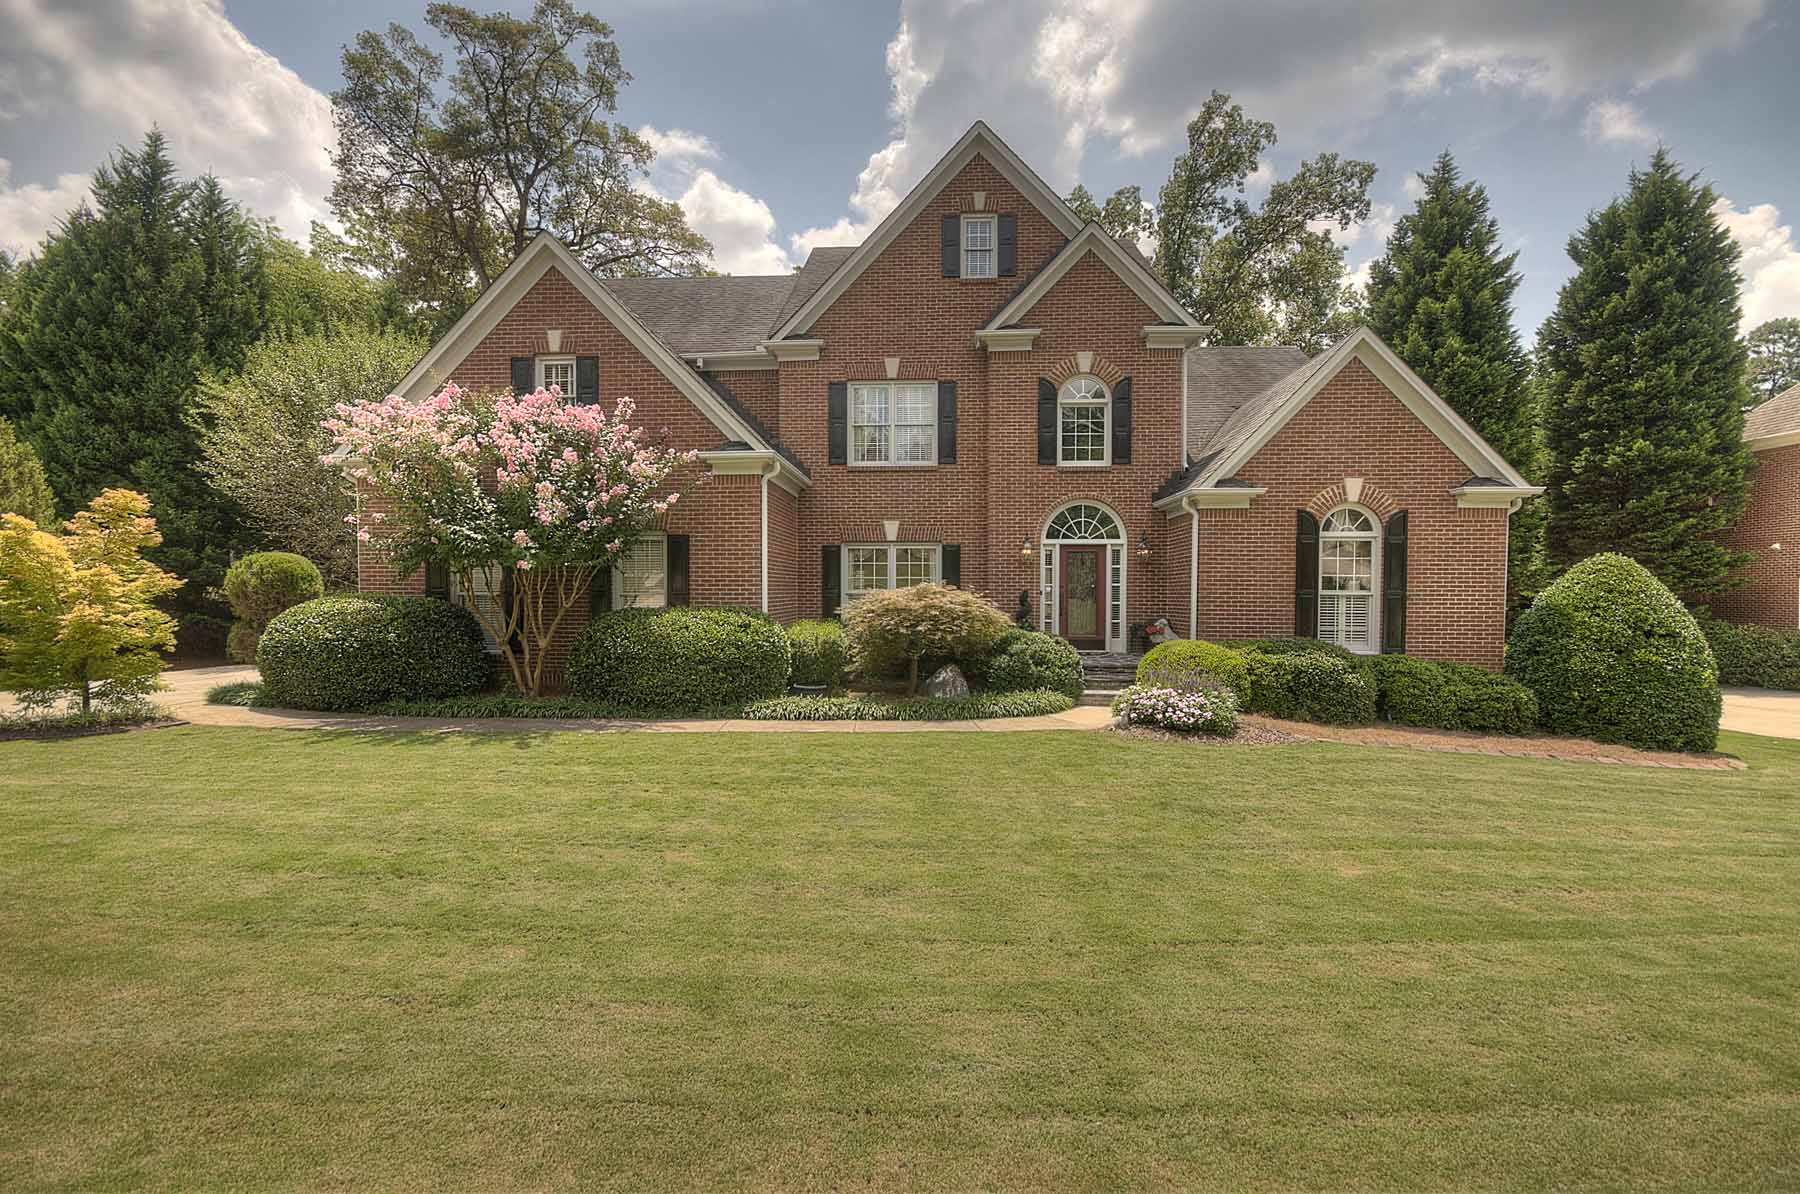 Casa para uma família para Venda às Remodeled and Meticulously Maintained in Sought After Sandy Springs Area 510 Woodmoore Court Atlanta, Geórgia 30342 Estados Unidos